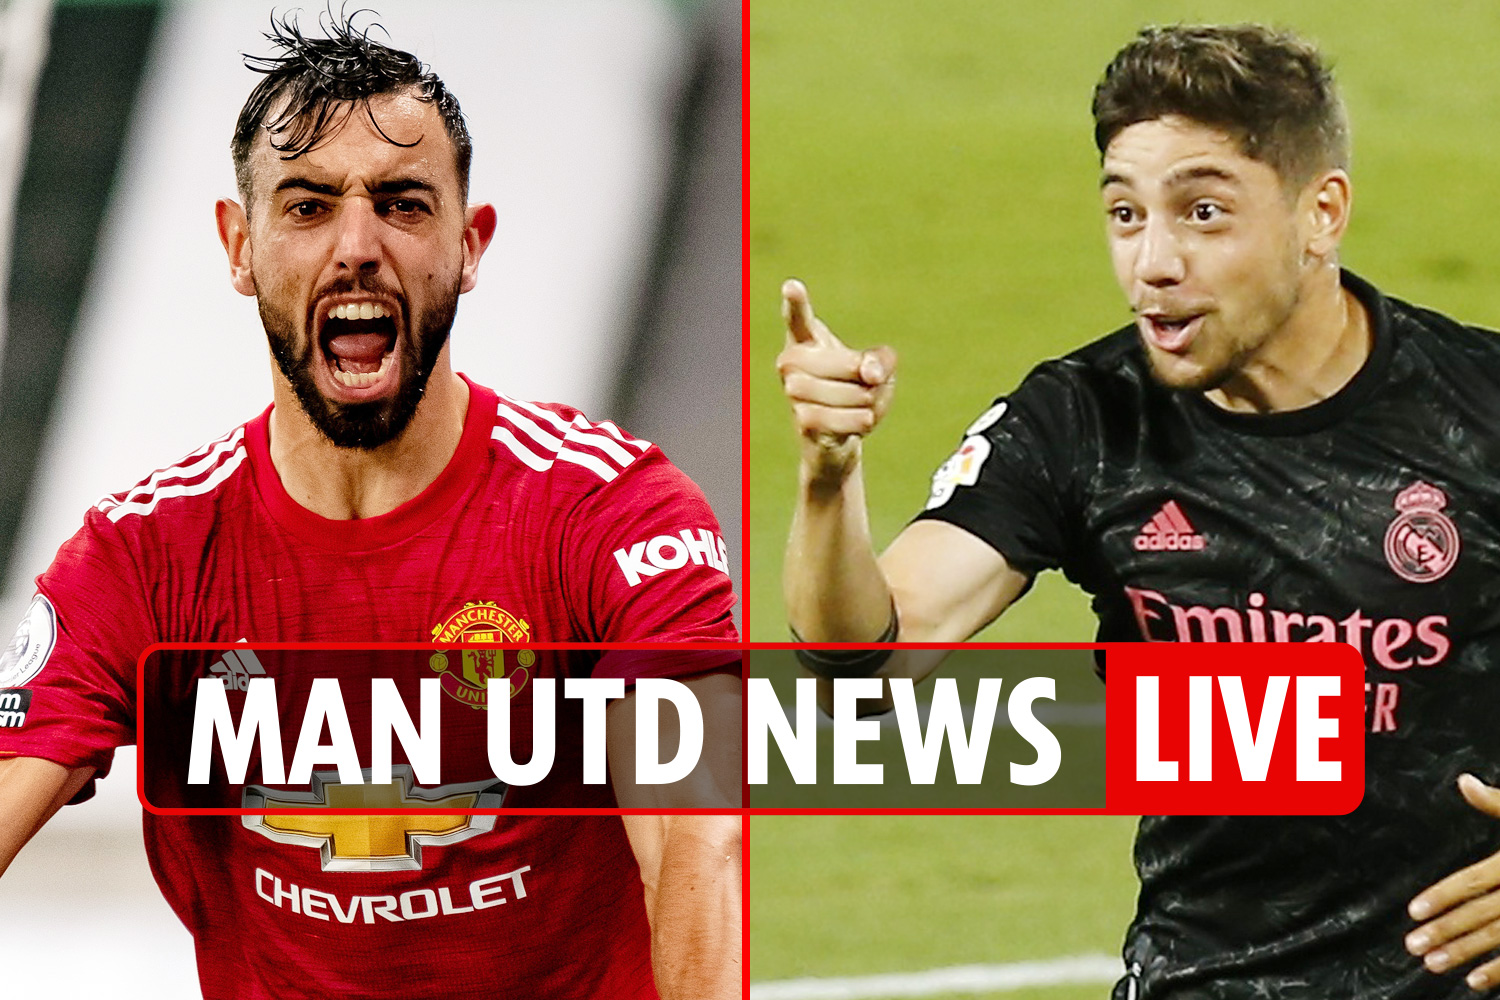 6pm Man Utd news LIVE: Mbappe WARNING, Federico Valverde EXCLUSIVE, Bruno Fernandes target for Real Madrid and Barca